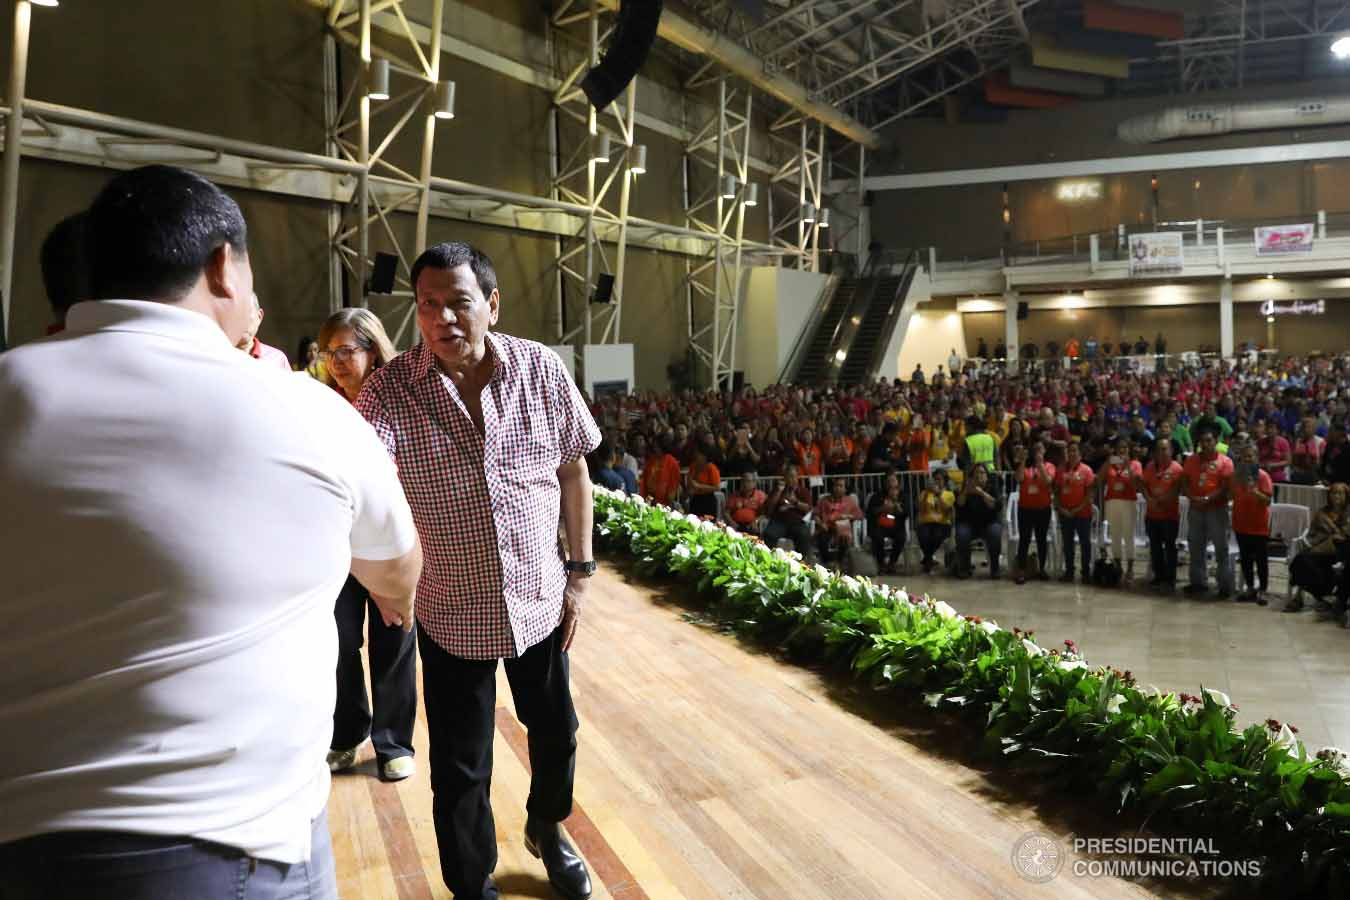 President Rodrigo Roa Duterte greets some of the guests during the 4th Roa Clan Grand Reunion at the Limketkai Center in Cagayan de Oro City on January 25, 2019. KARL ALONZO/PRESIDENTIAL PHOTO